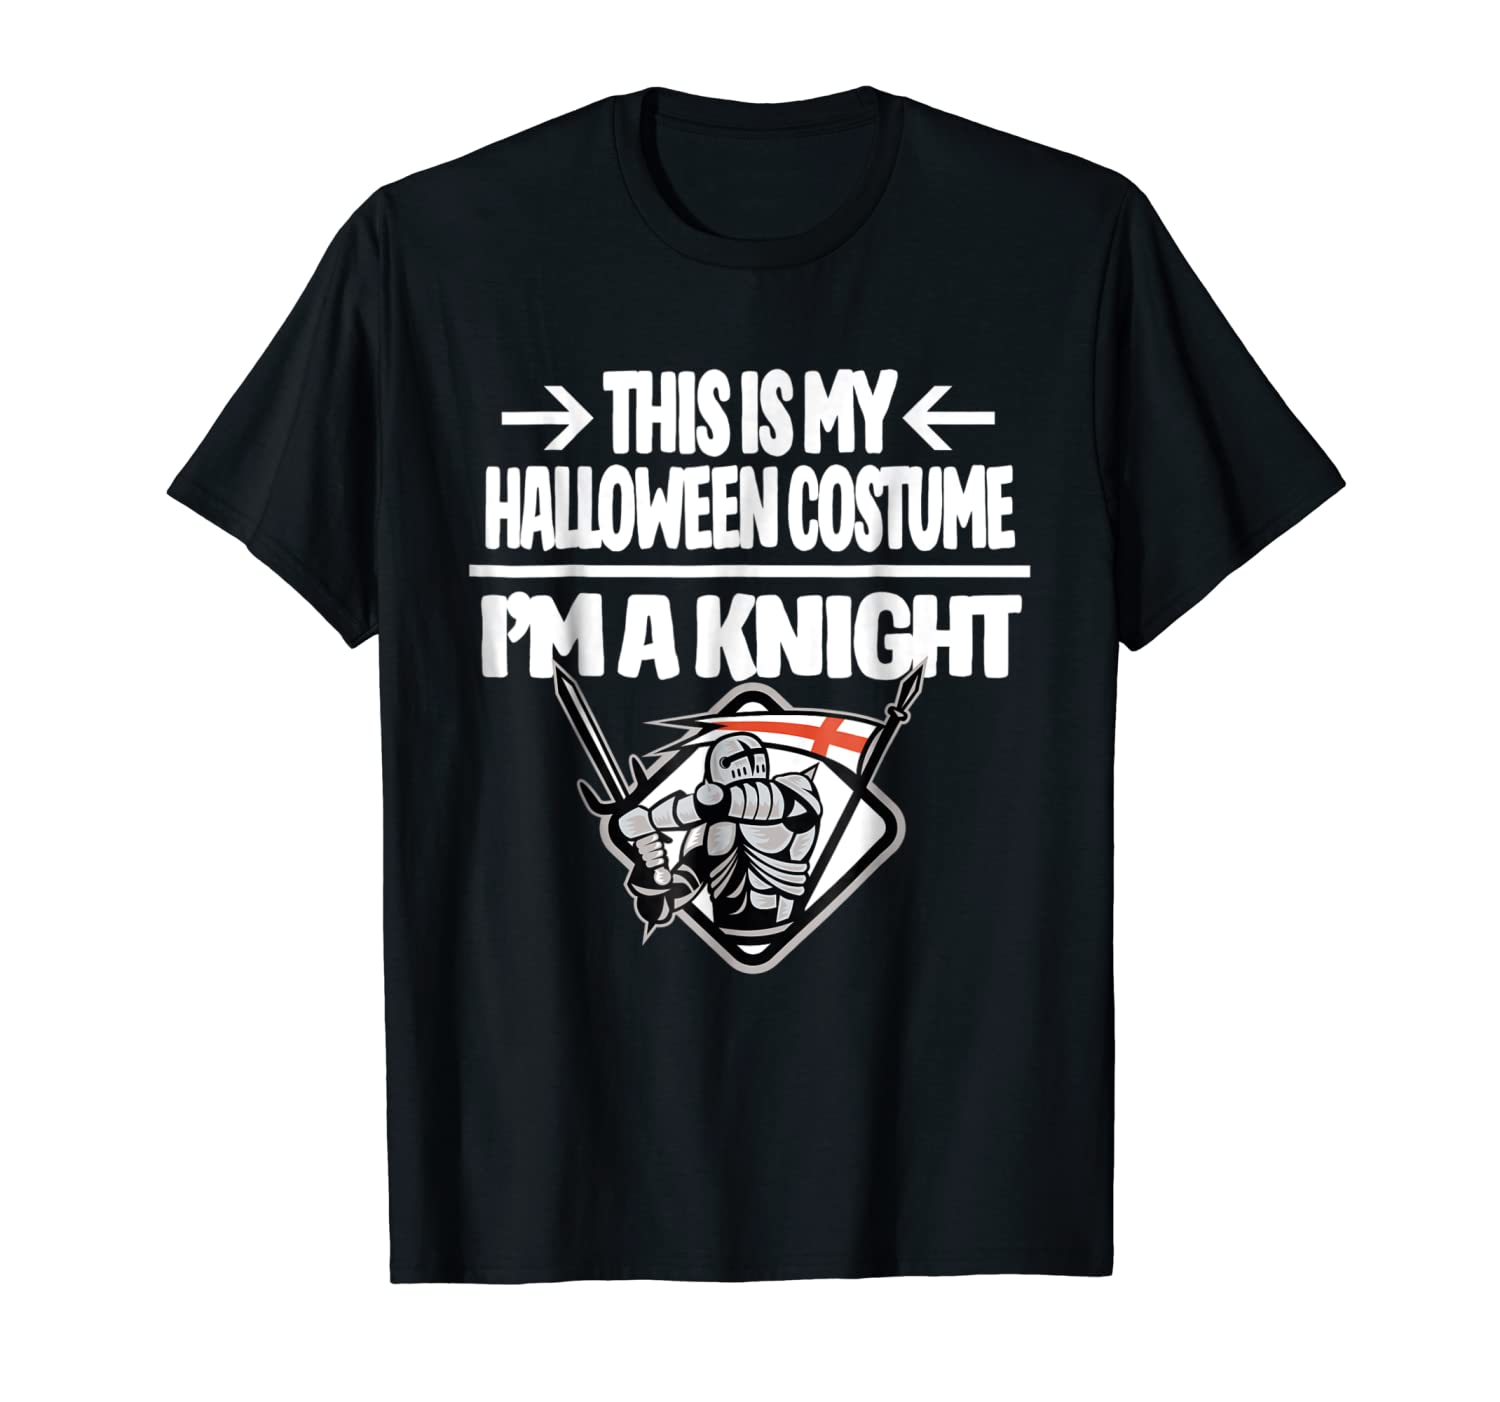 Knight Halloween Costume Shirt - Fun For Trick or Treating